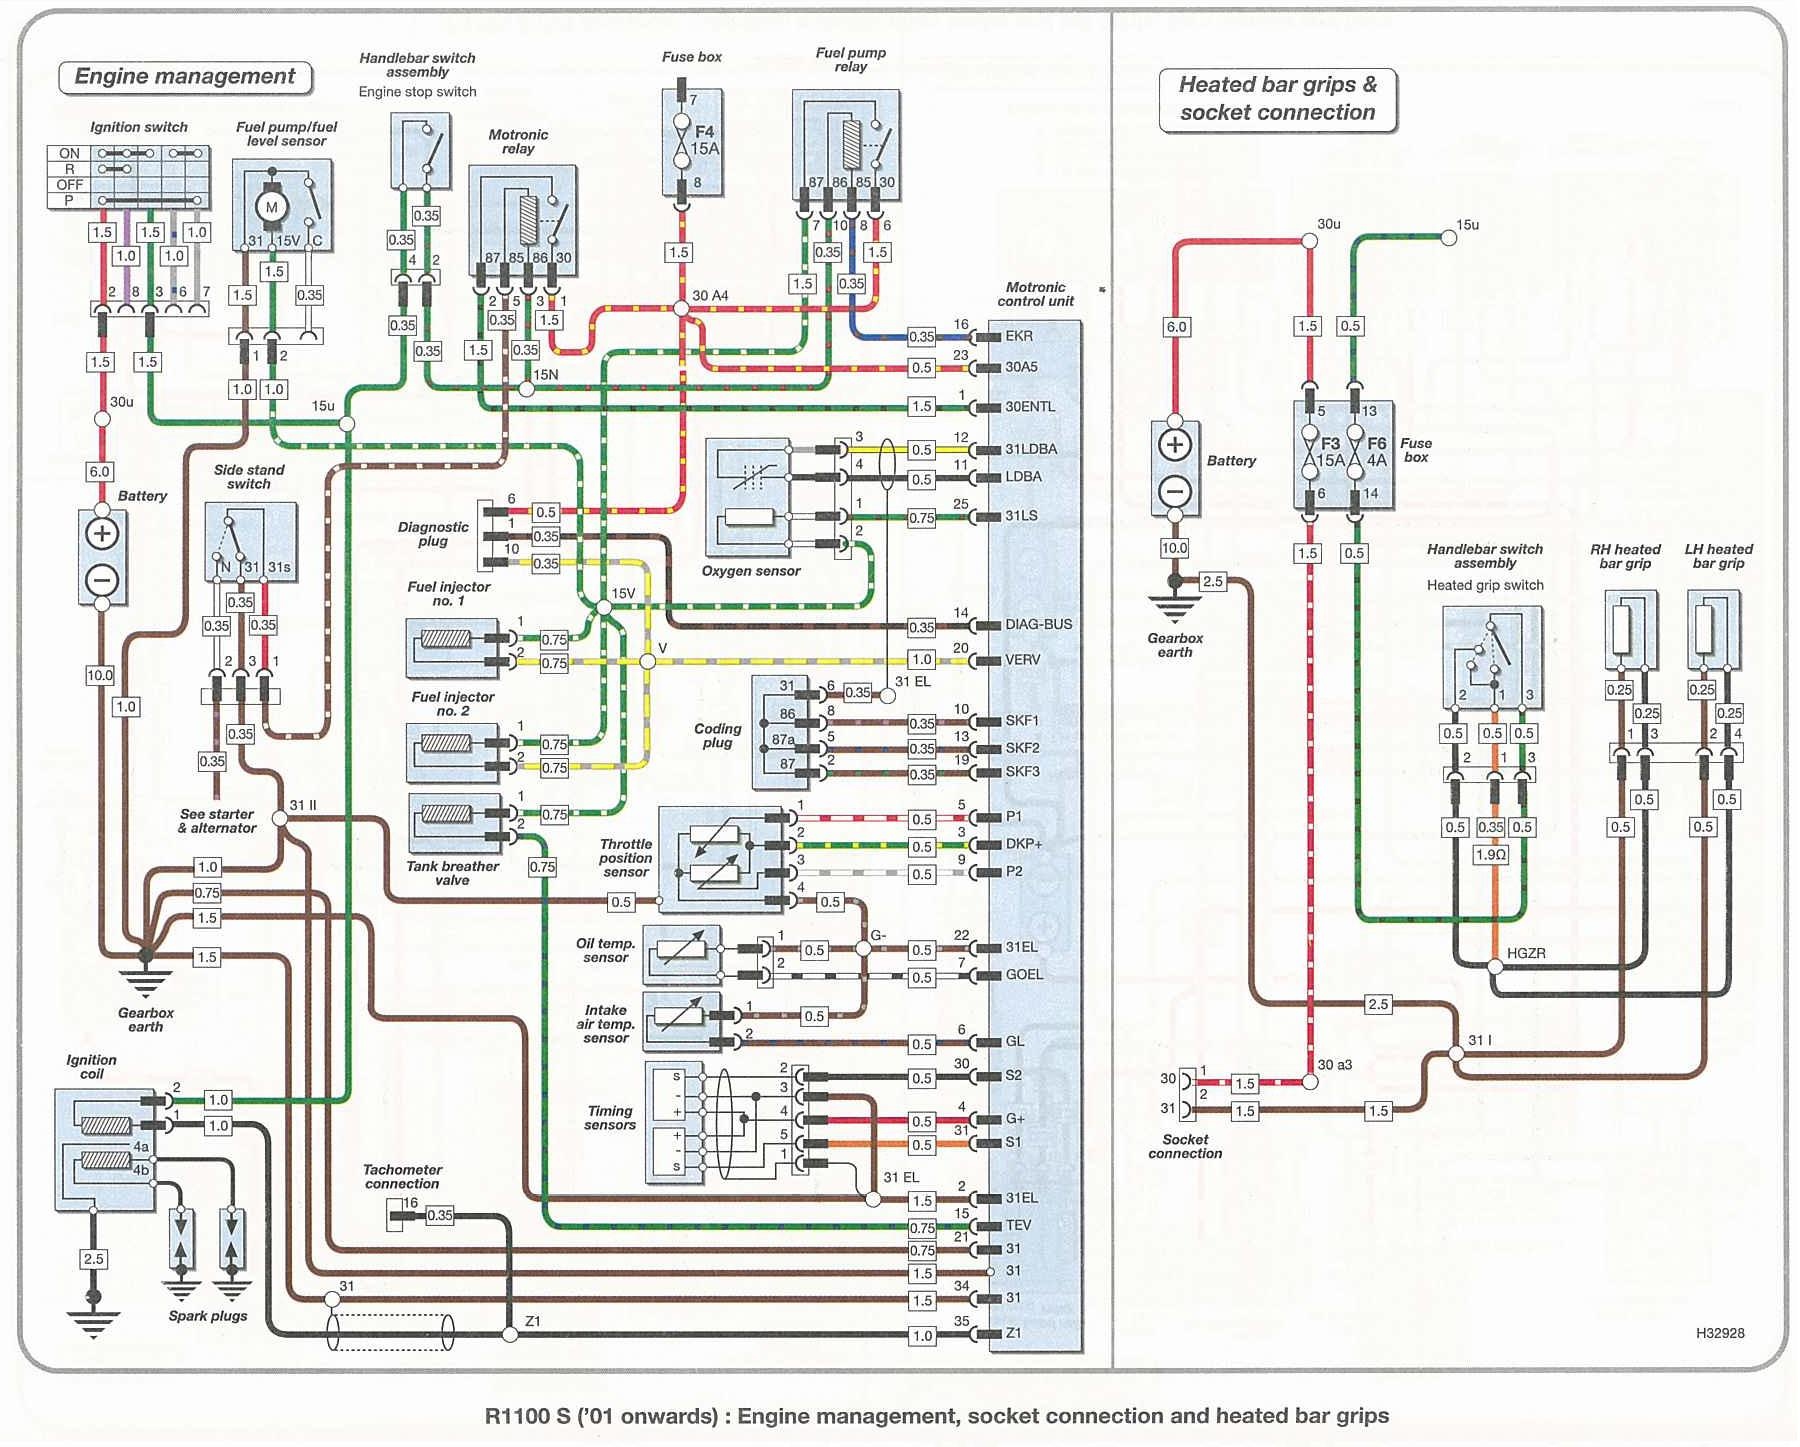 hight resolution of fuse box diagram wiring fuse location fuse box diagram jpg 1800x1447 2005 bmw 325i fuse box